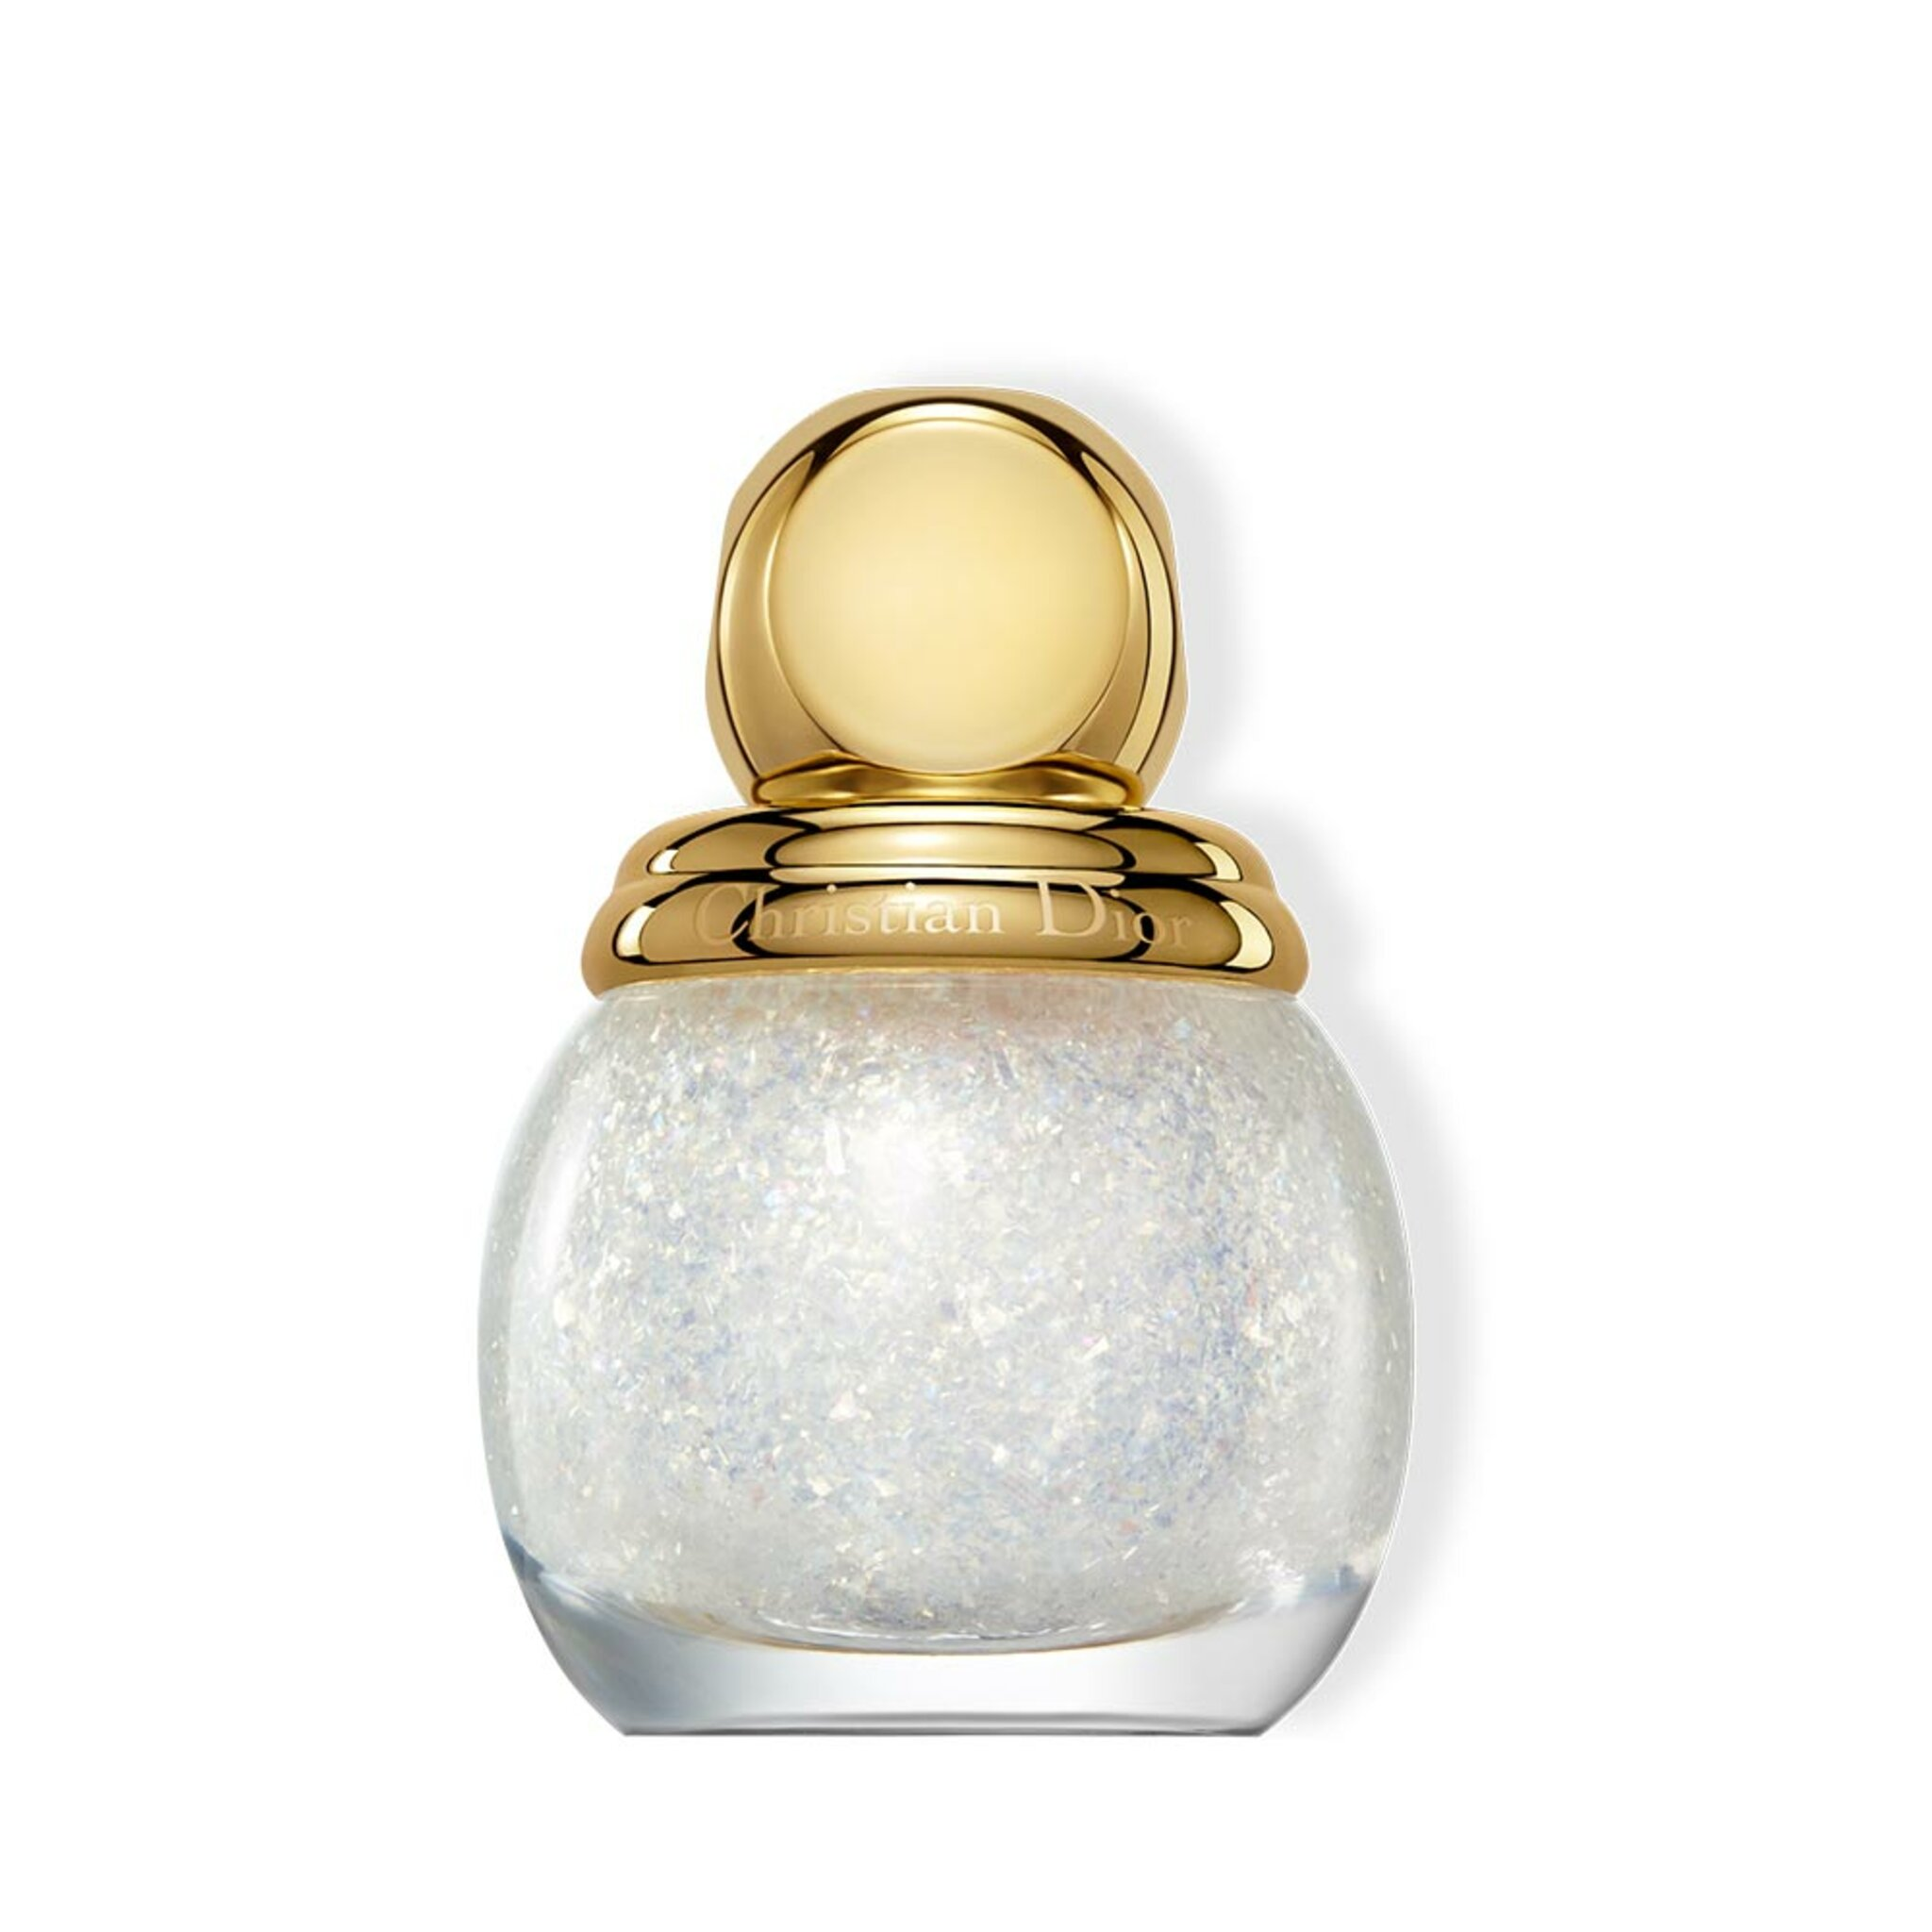 Diorific Vernis - Golden Nights Collection Limited Edition Top Coat Nail Lacquer, 12 ML